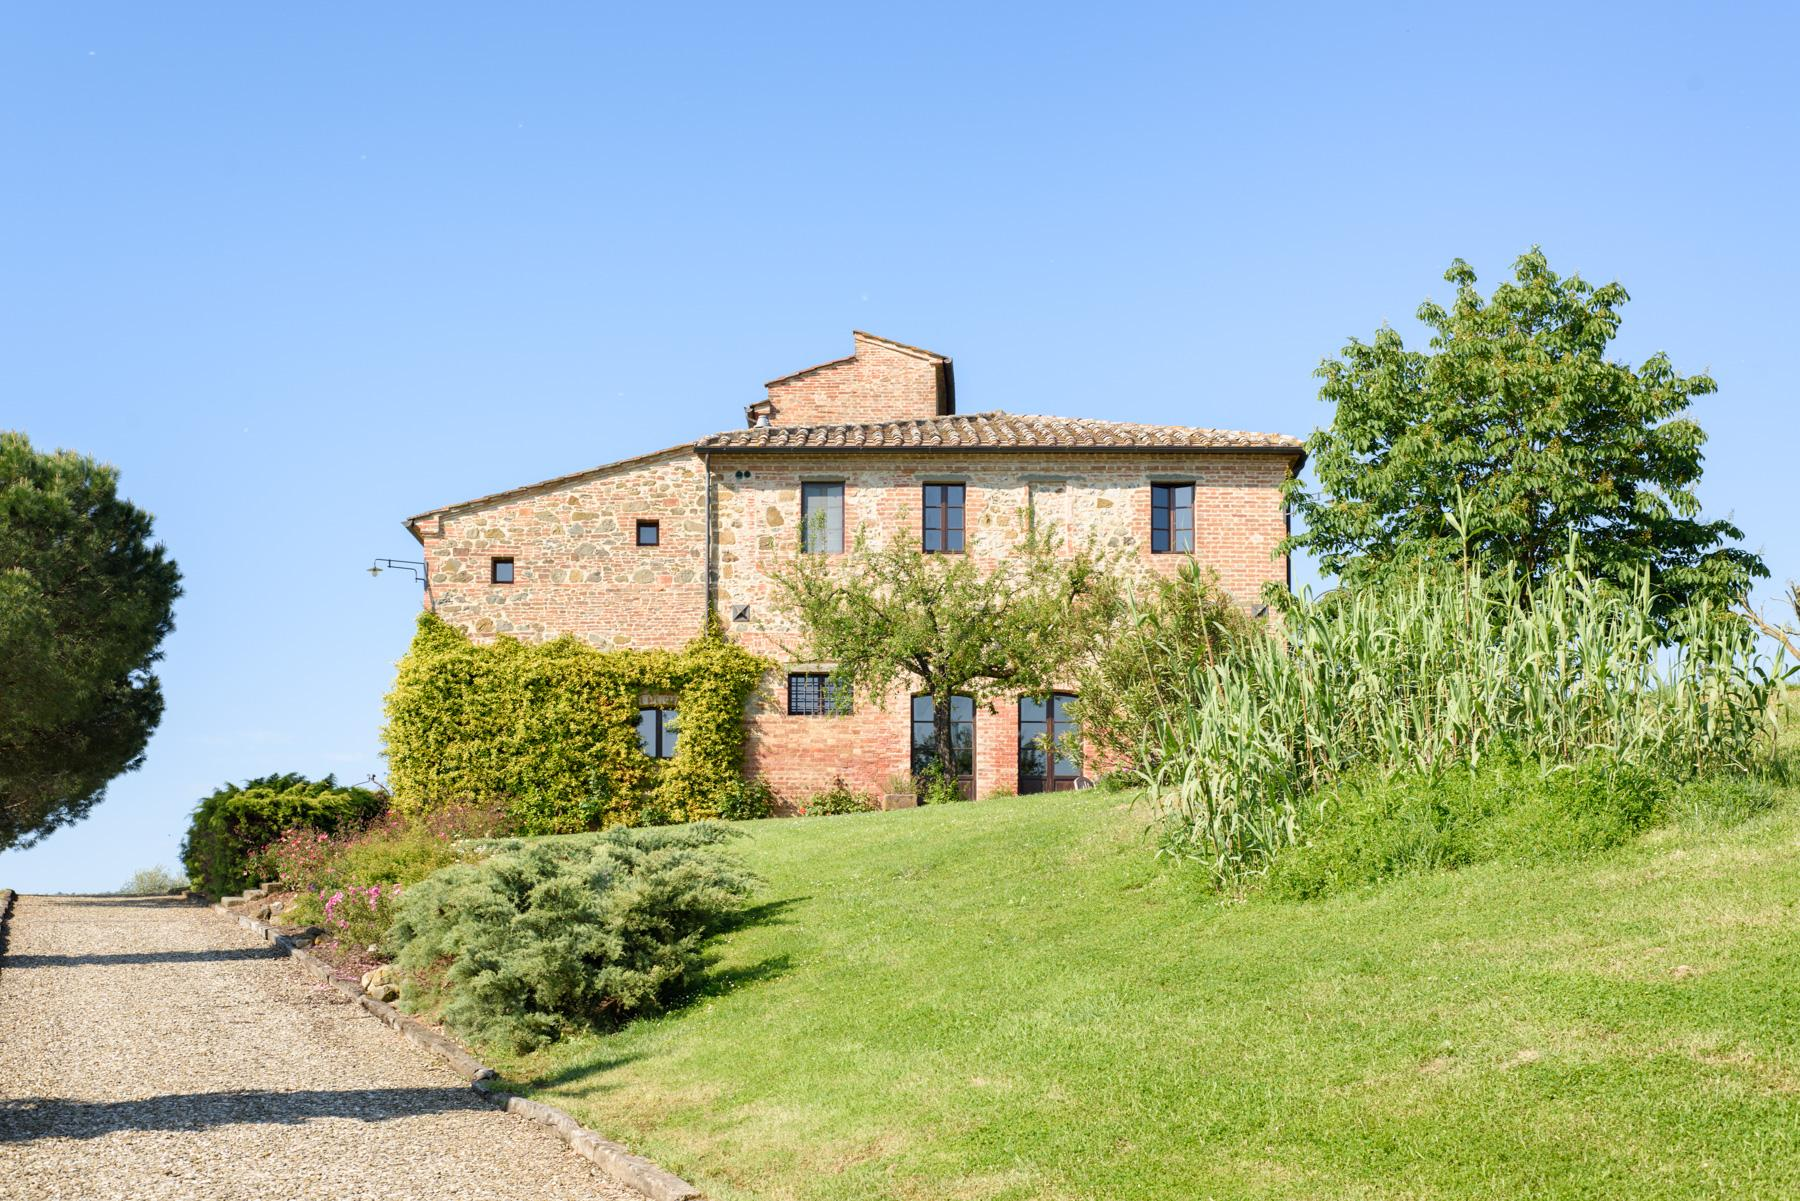 Tuscan countryhouse with 2,5 ha of vineyards - 2